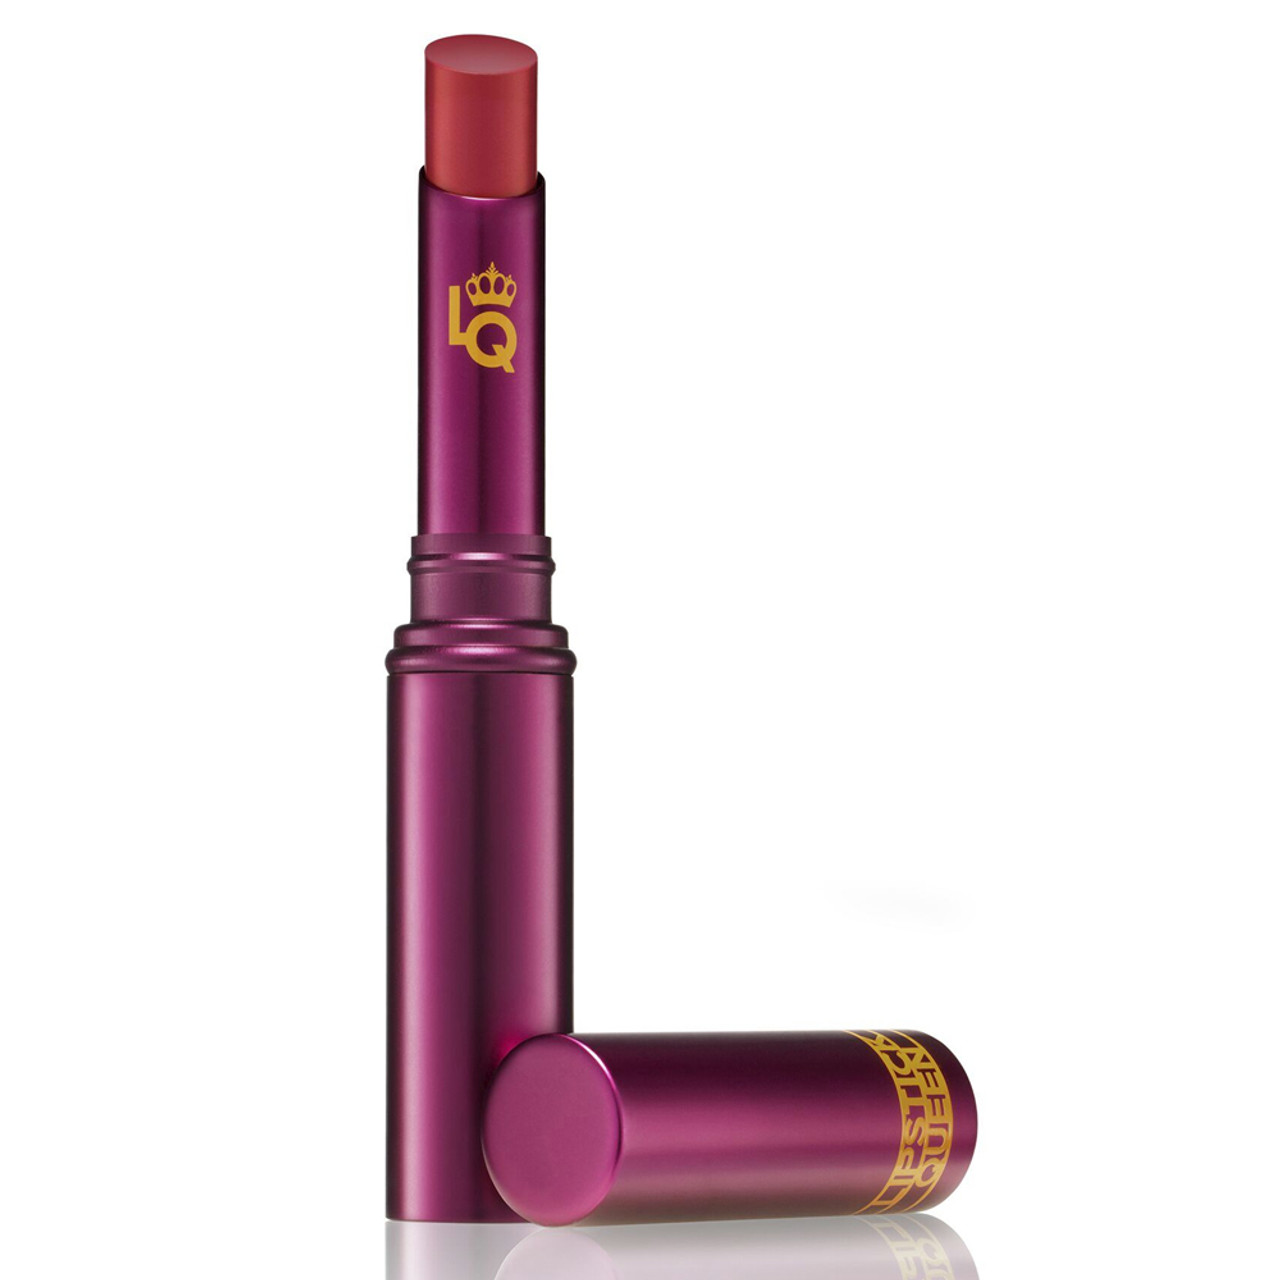 Lipstick Queen Medieval Full Cream Intense Lipstick